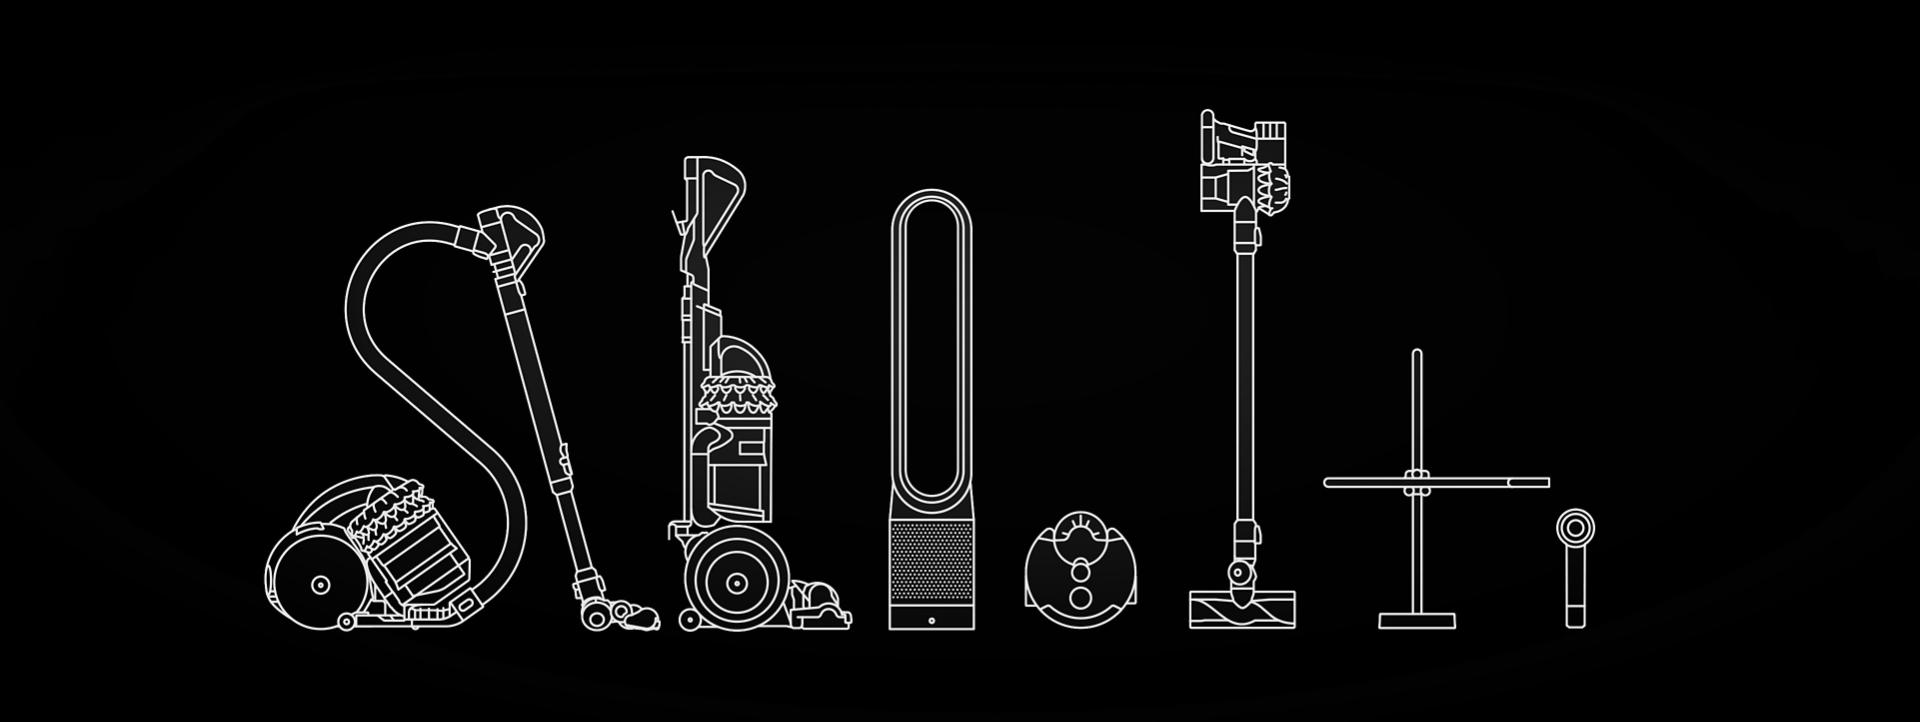 Dyson machine outlines